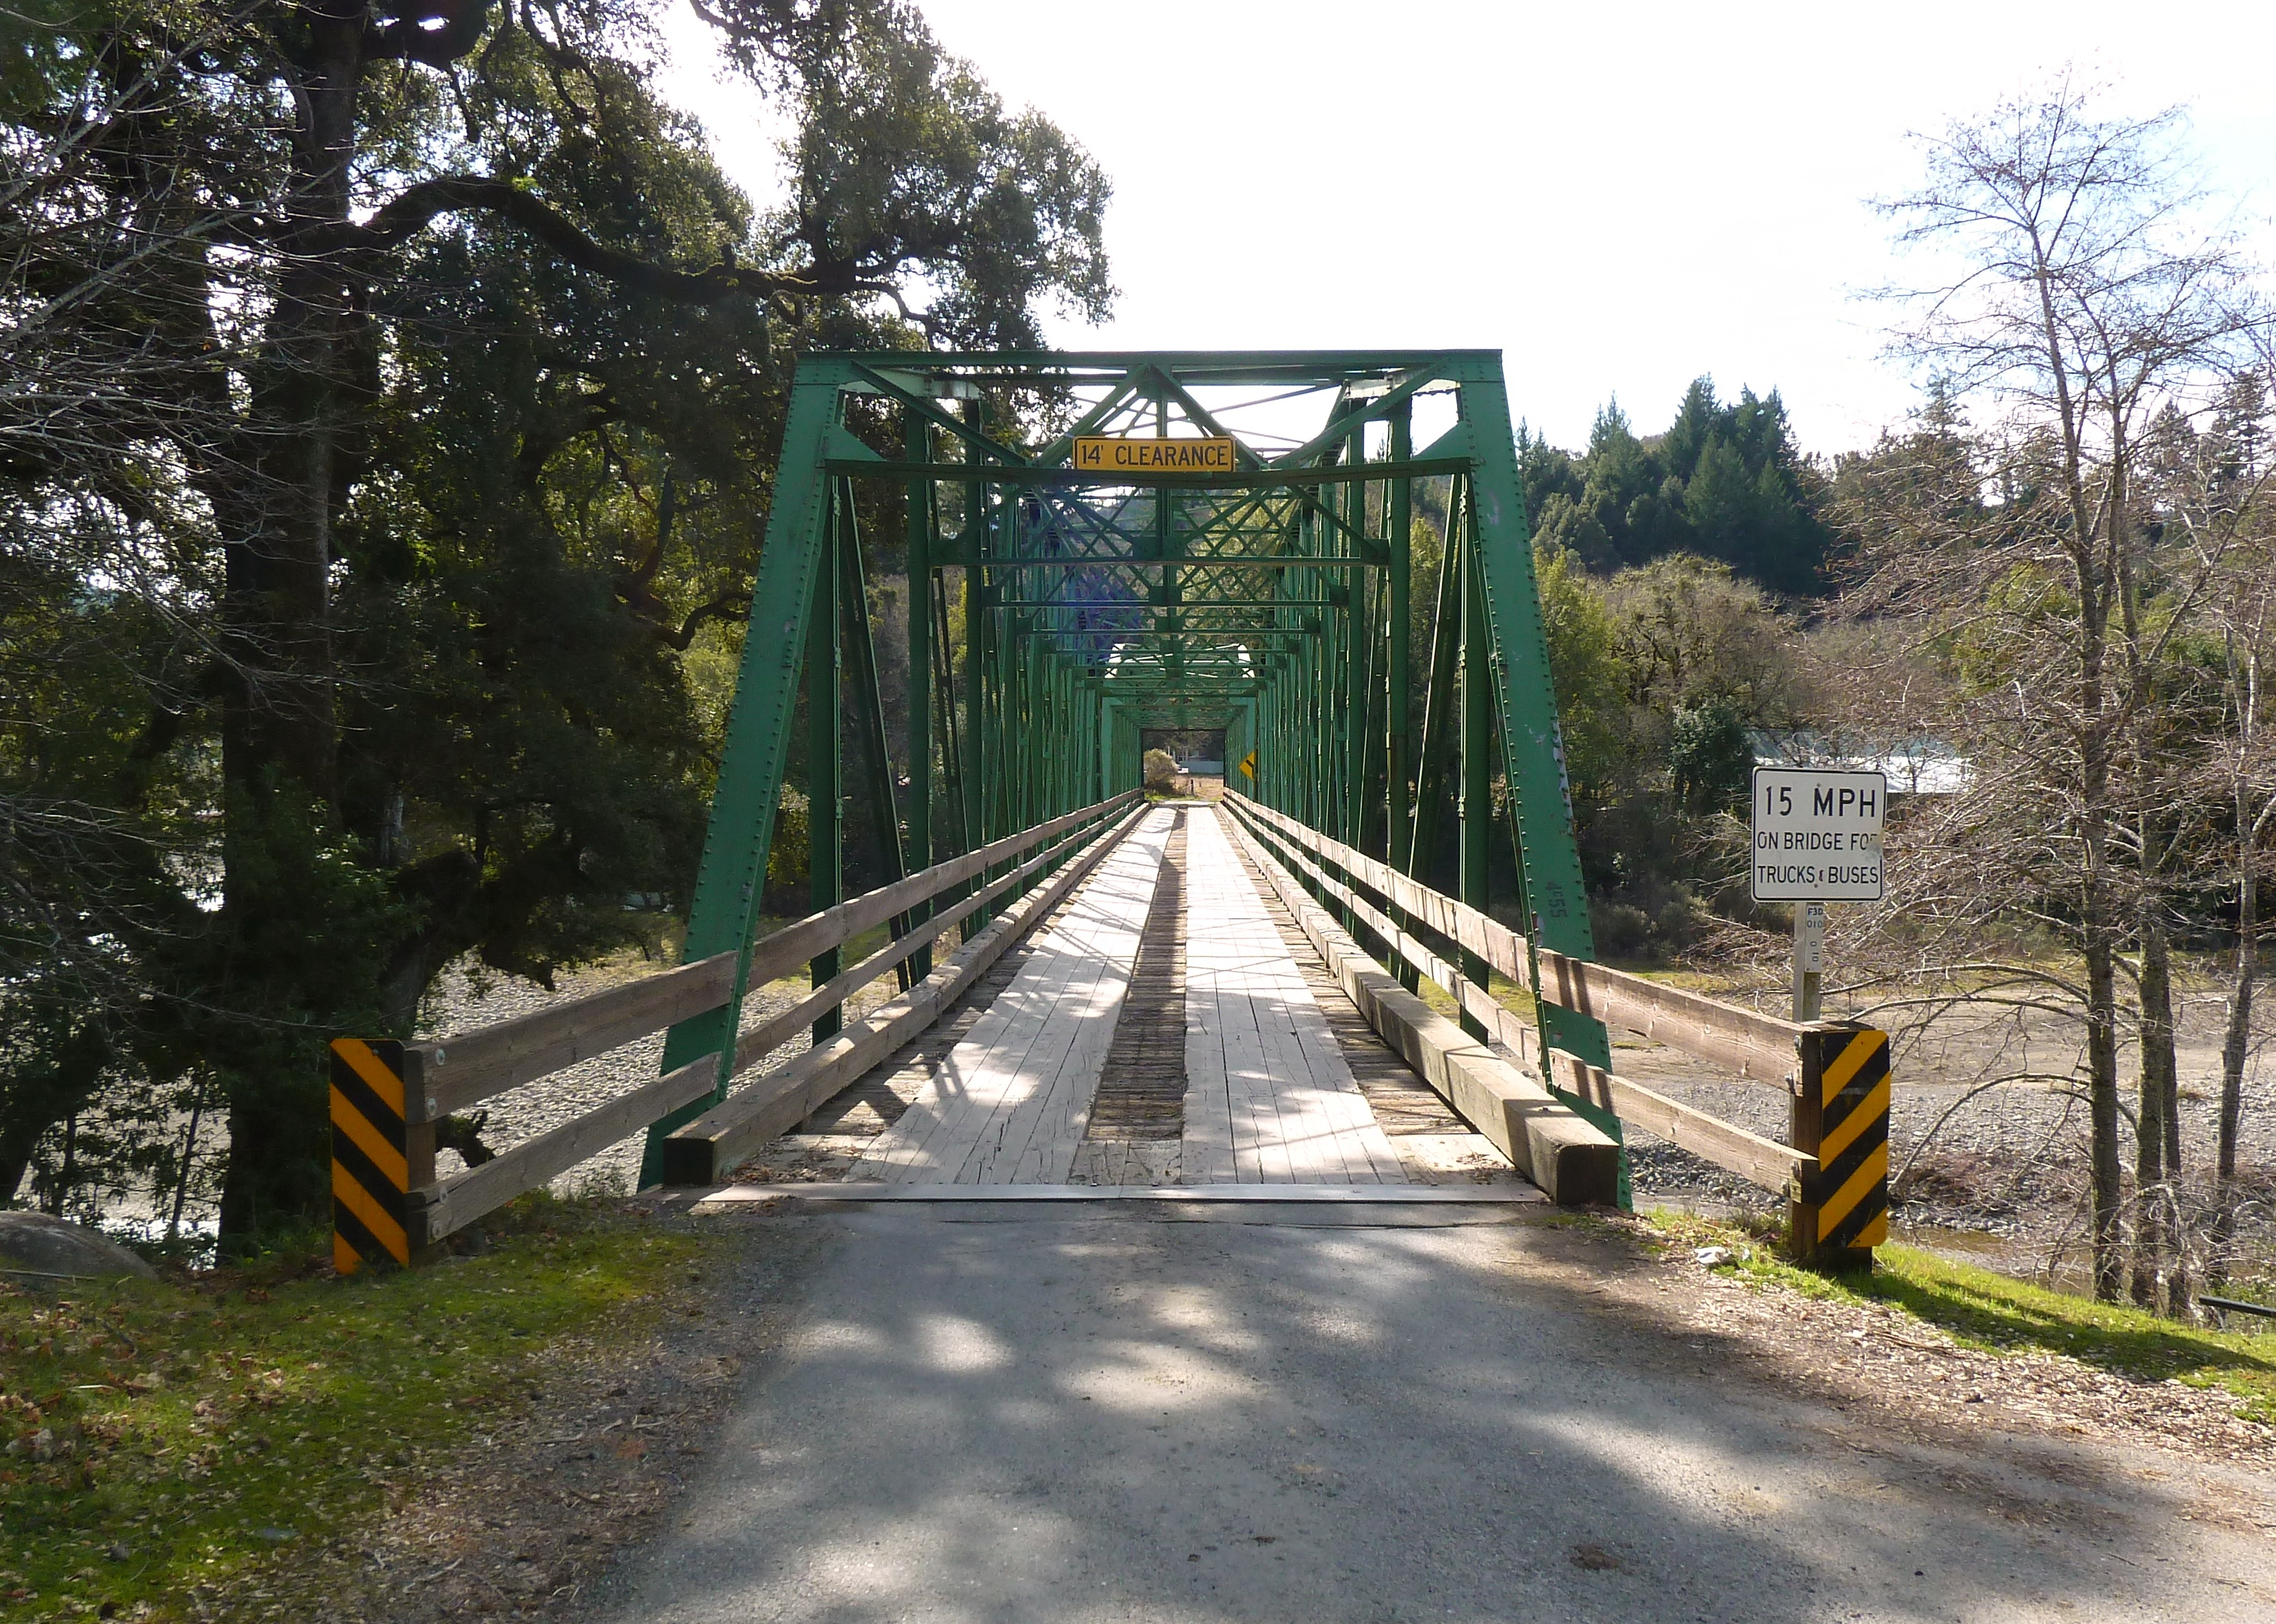 Honeydew Bridge over the Mattole River